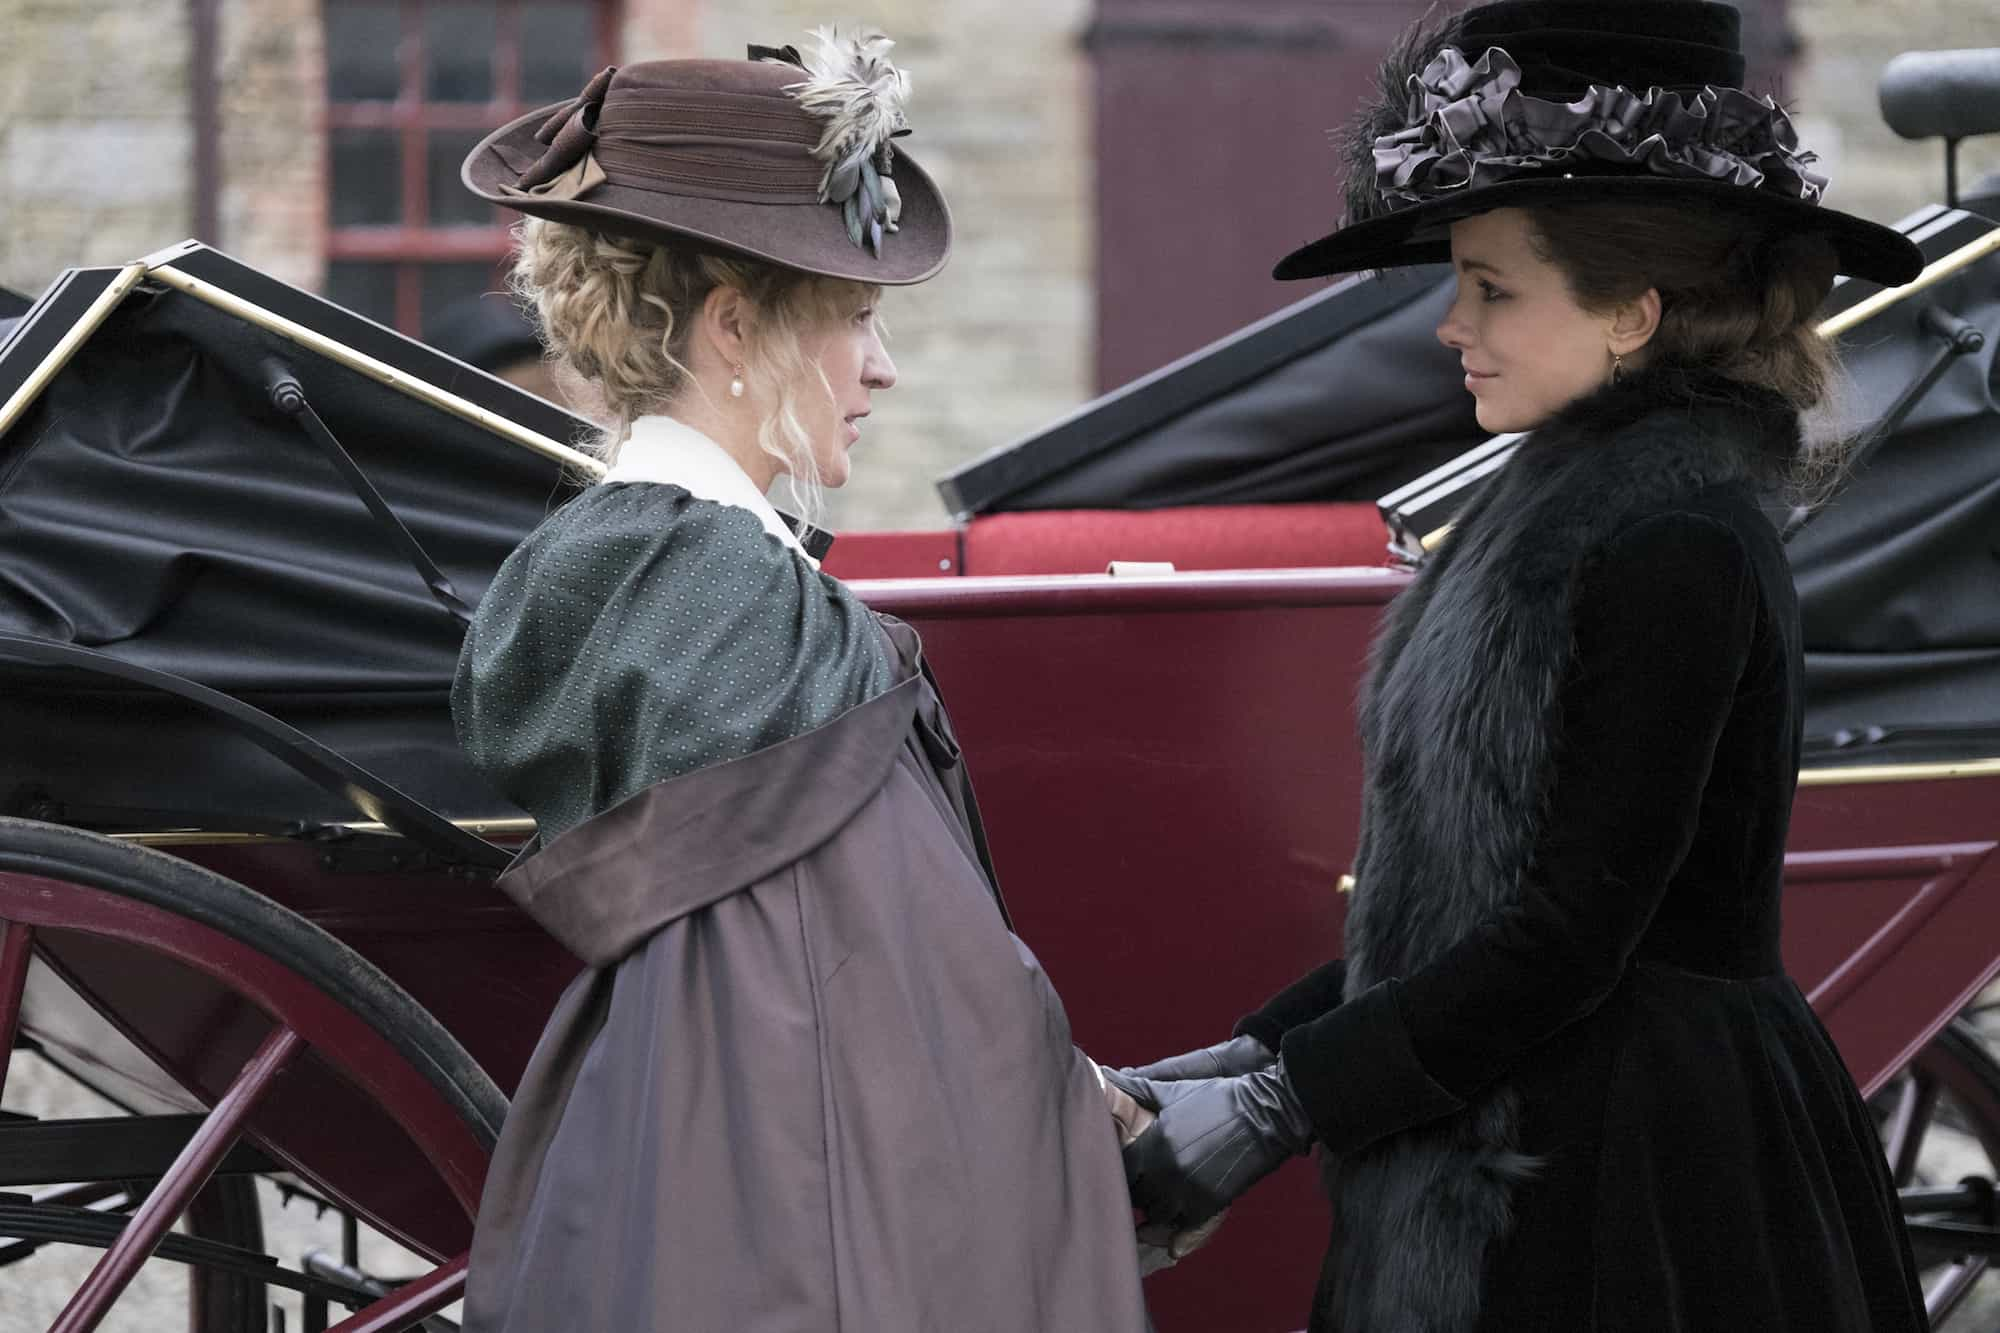 Love & Friendship courtesy of the Sundance Film Festival